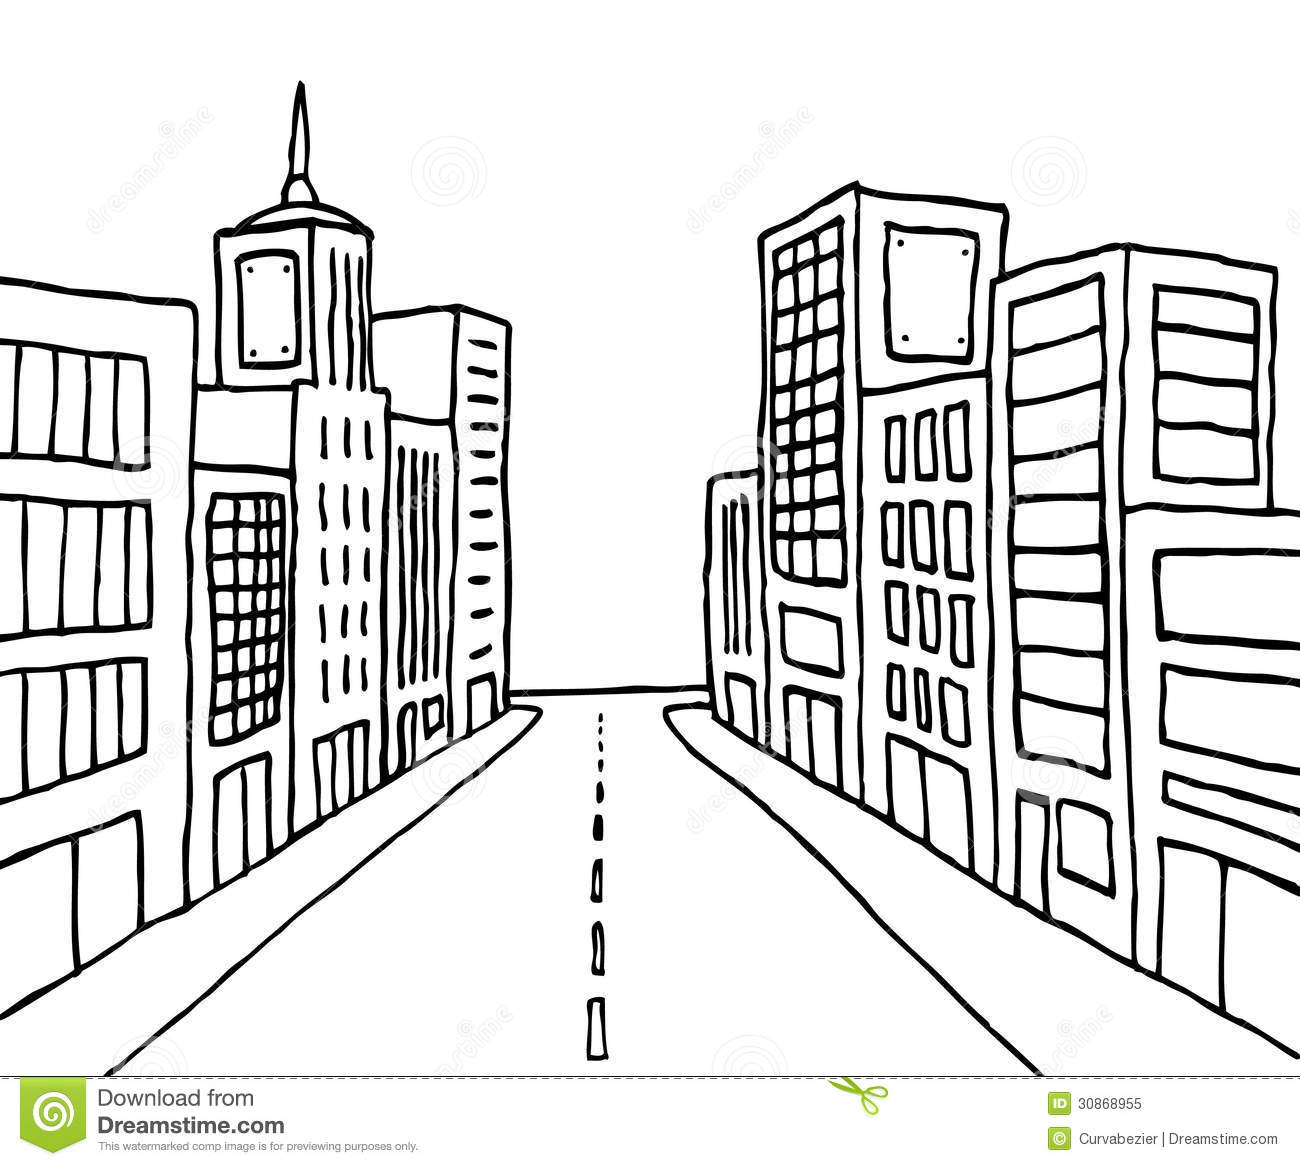 1000 images about city images on pinterest cartoon